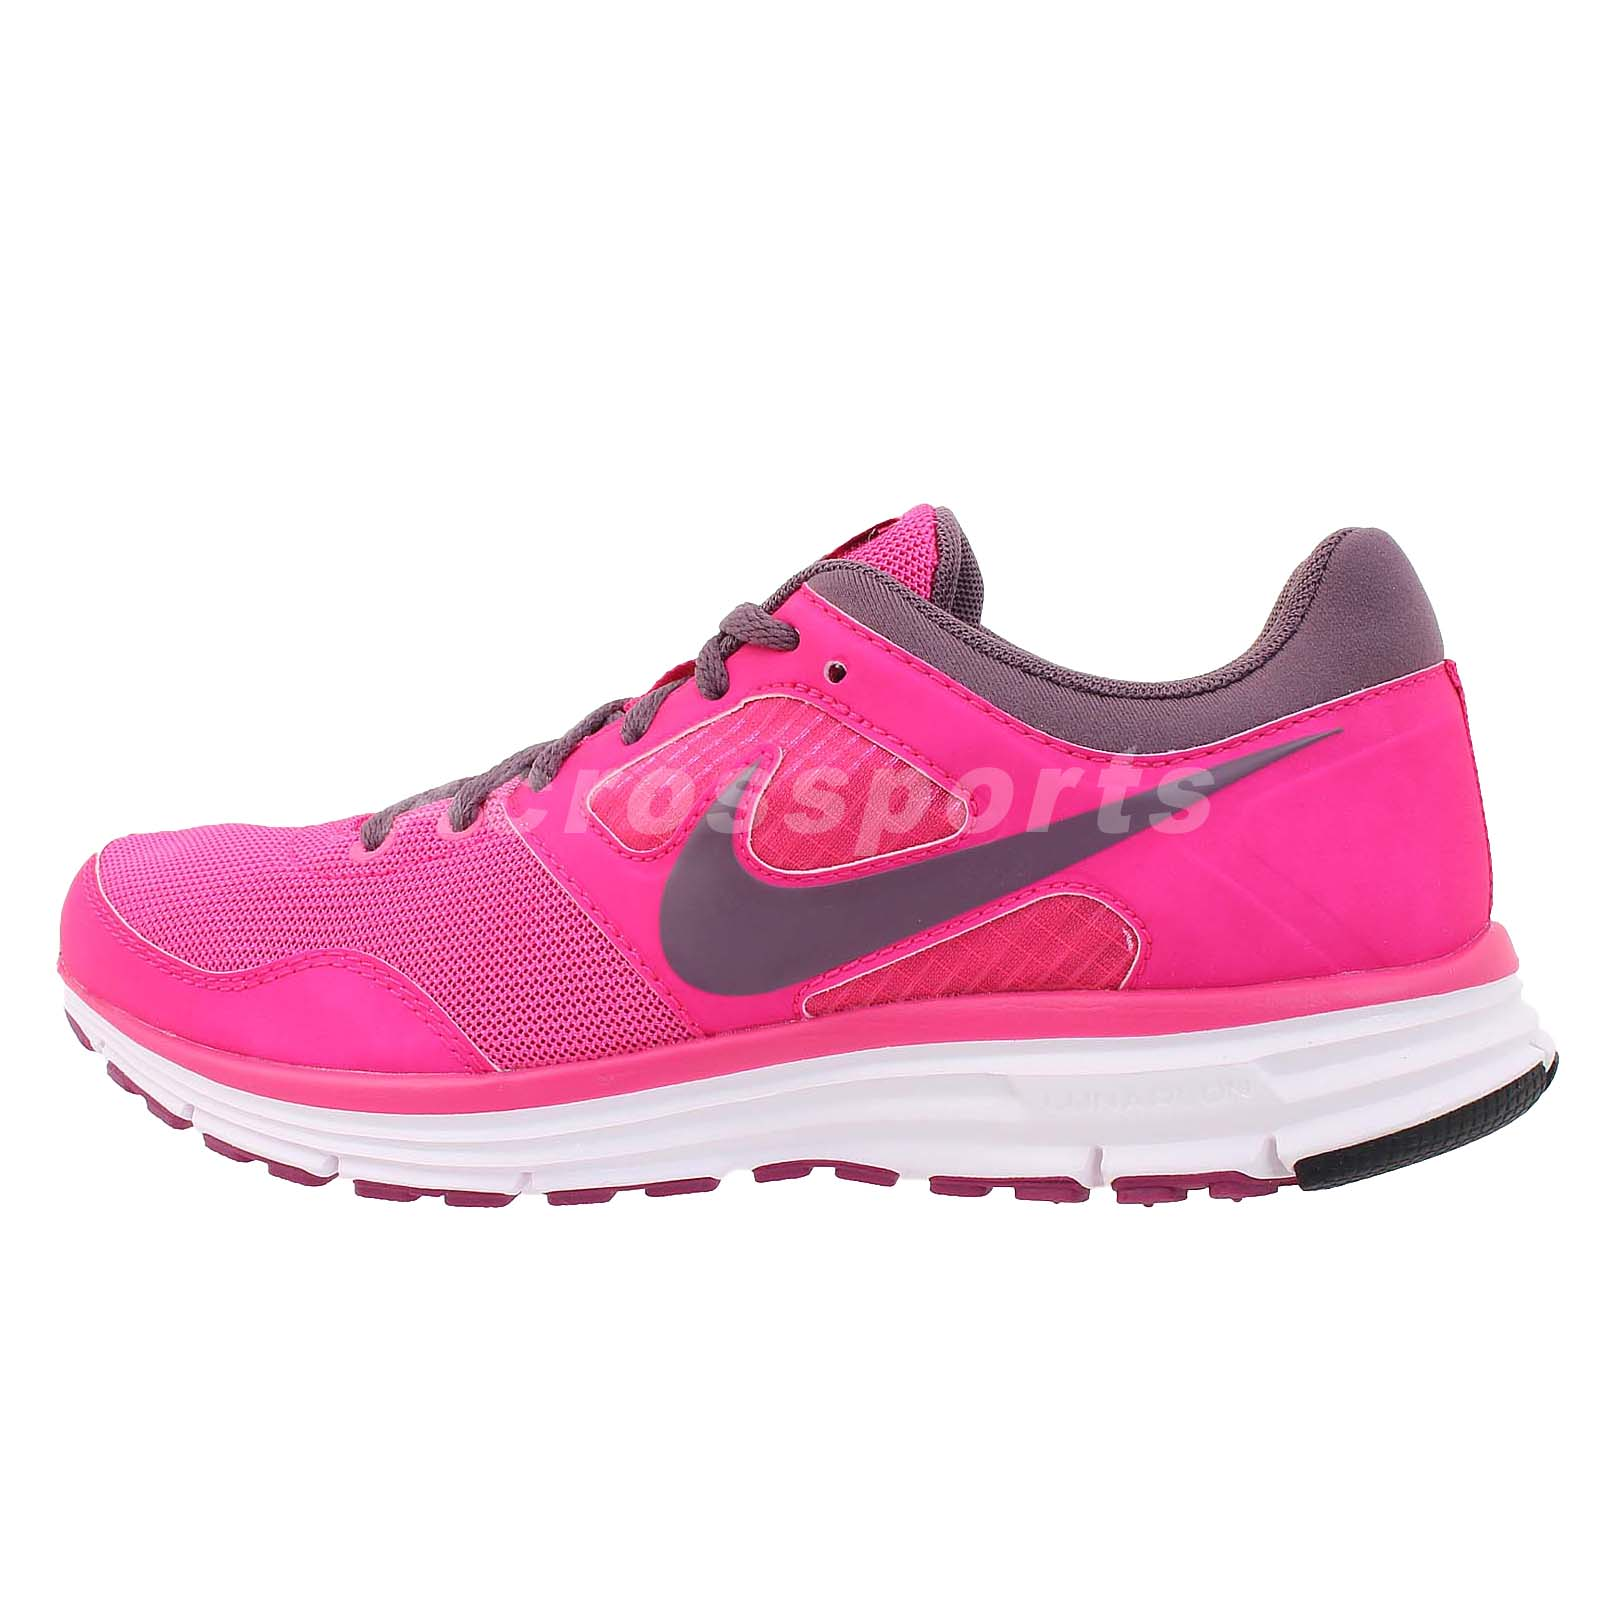 Innovative  Shoes Pink Nikes Nike Free Running Cheap Nike Nike Shoes Nike